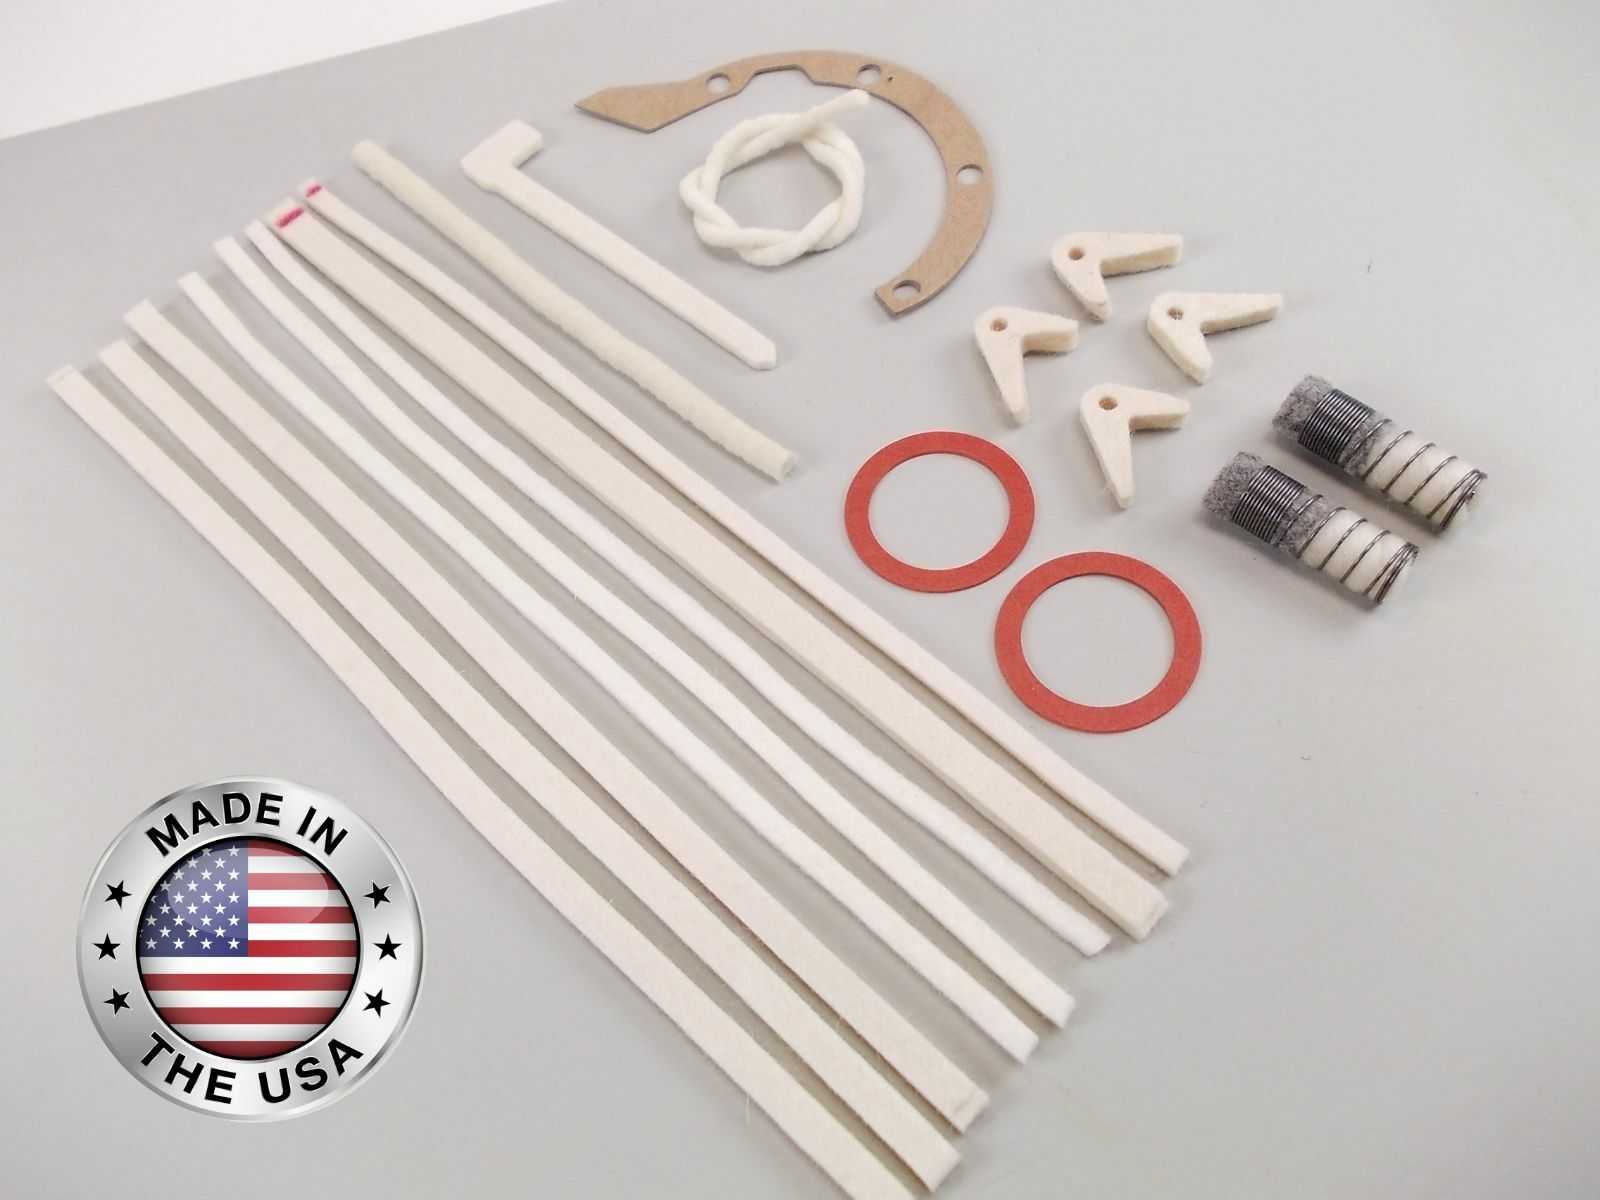 South Bend Lathe 9 Model A Rebuild Parts Kit 4495 Picclick Wiring Diagram 1 Of 5free Shipping